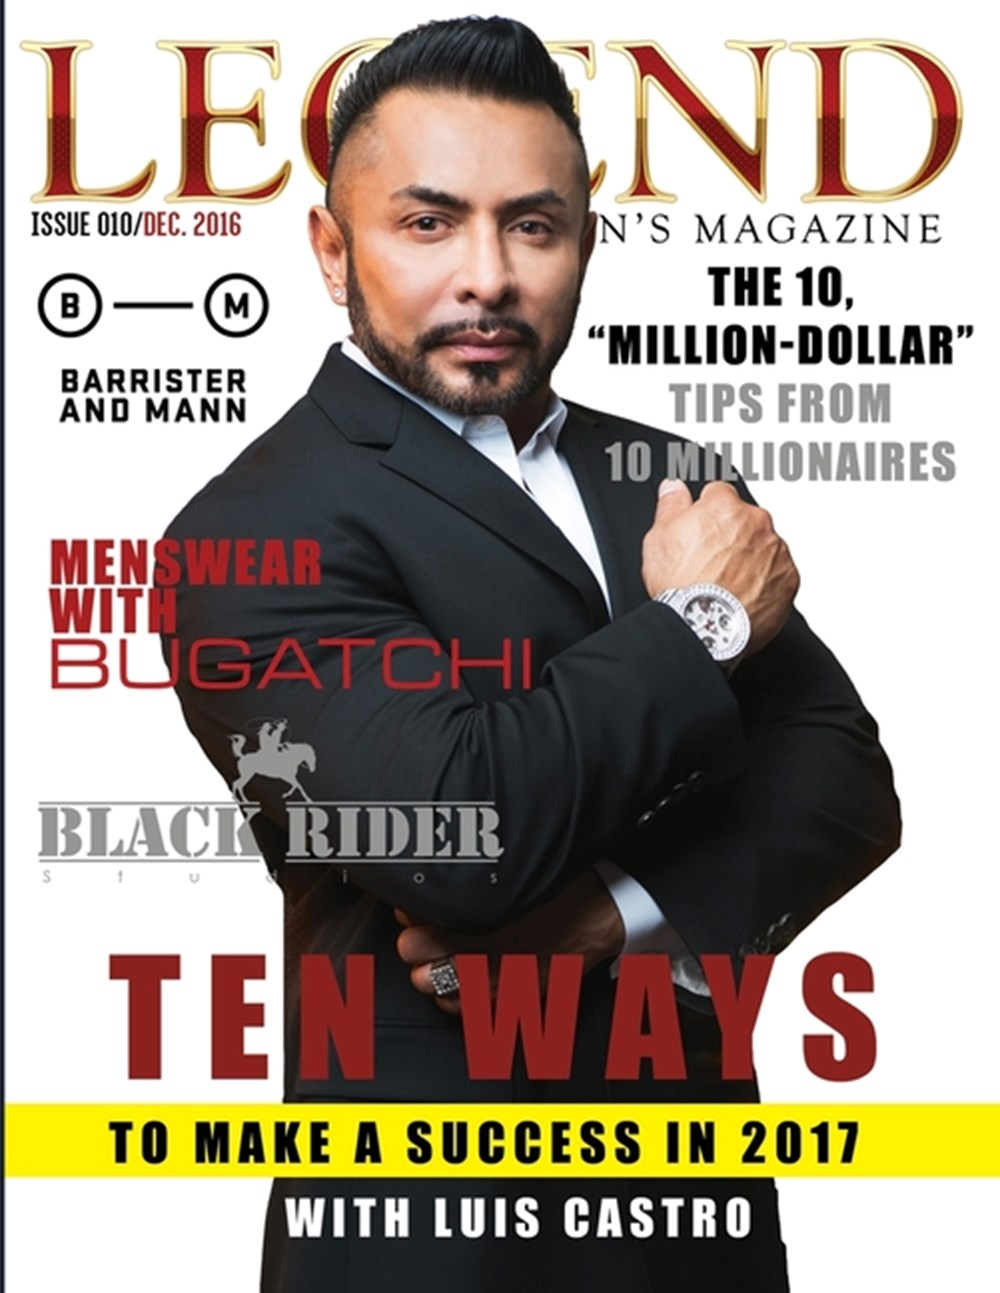 Legend Men's Magazine Business Success with Luis Castro